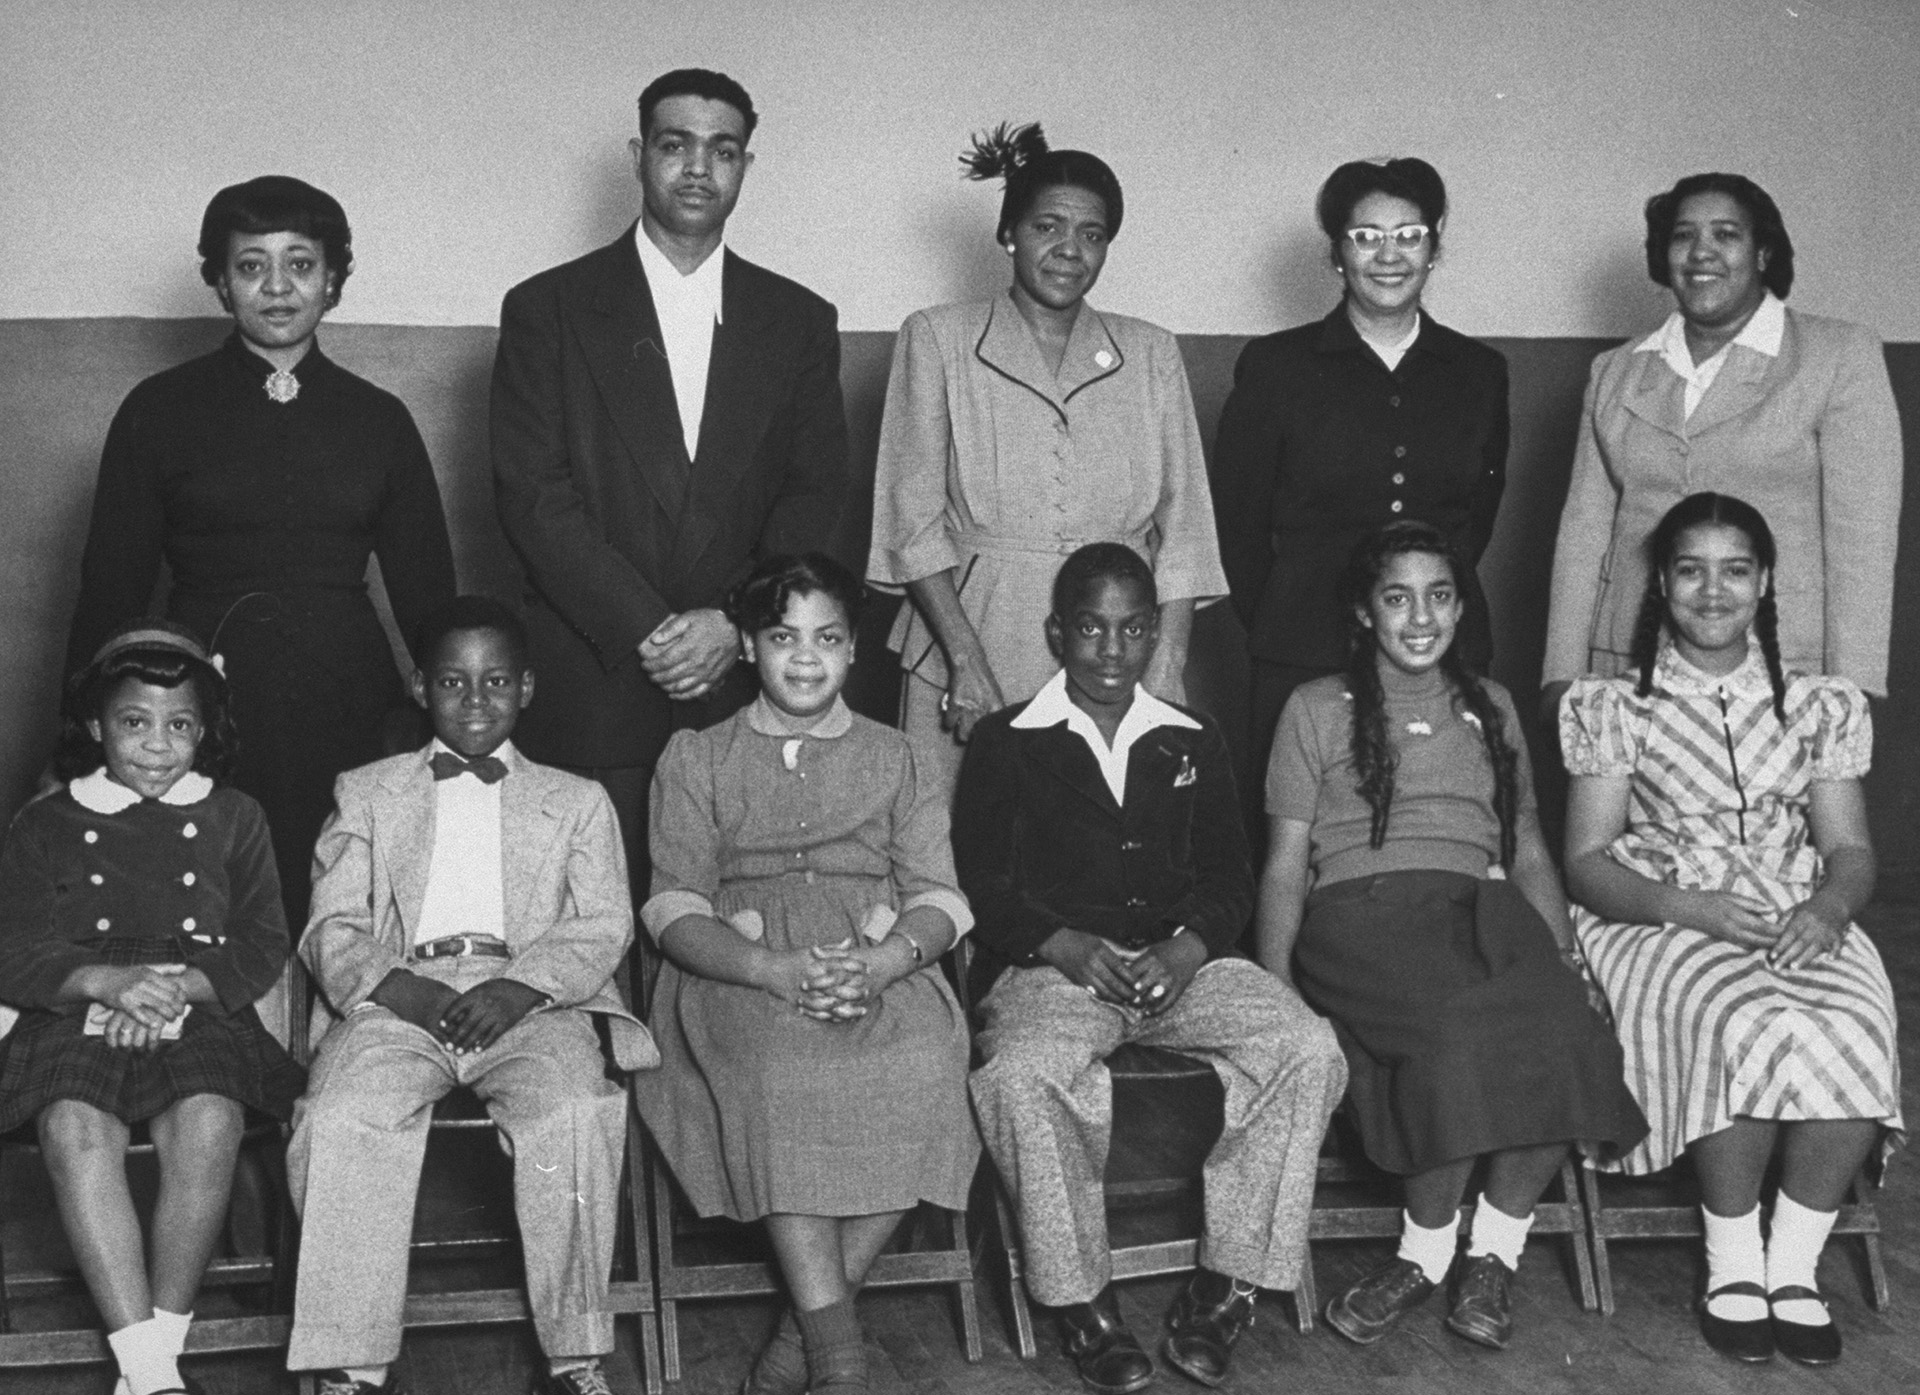 The students for whom the famous Brown v. Board of Education case was brought, with their parents (L-R) Zelma Henderson, Oliver Brown, Sadie Emanuel, Lucinda Todd, and Lena Carper, 1953. (Credit: Carl Iwasaki/The LIFE Images Collection/Getty Images)